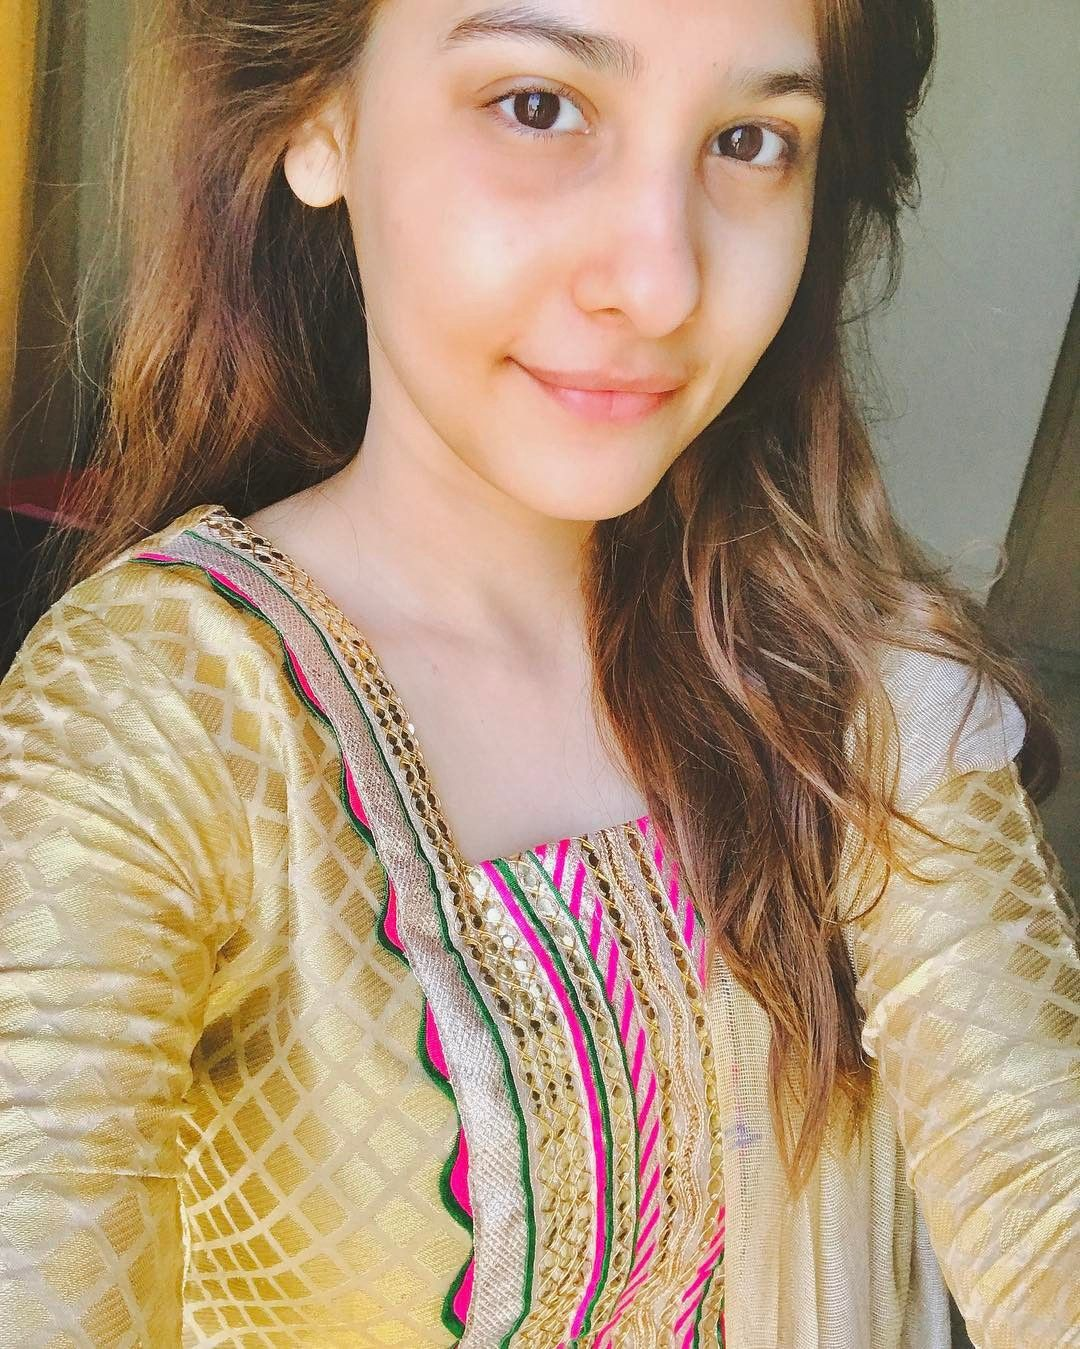 No Makeup Picture Trying To Feel Like A Human Notaplasticdoll Stylish Girl Pic Stylish Girl Beautiful Indian Actress